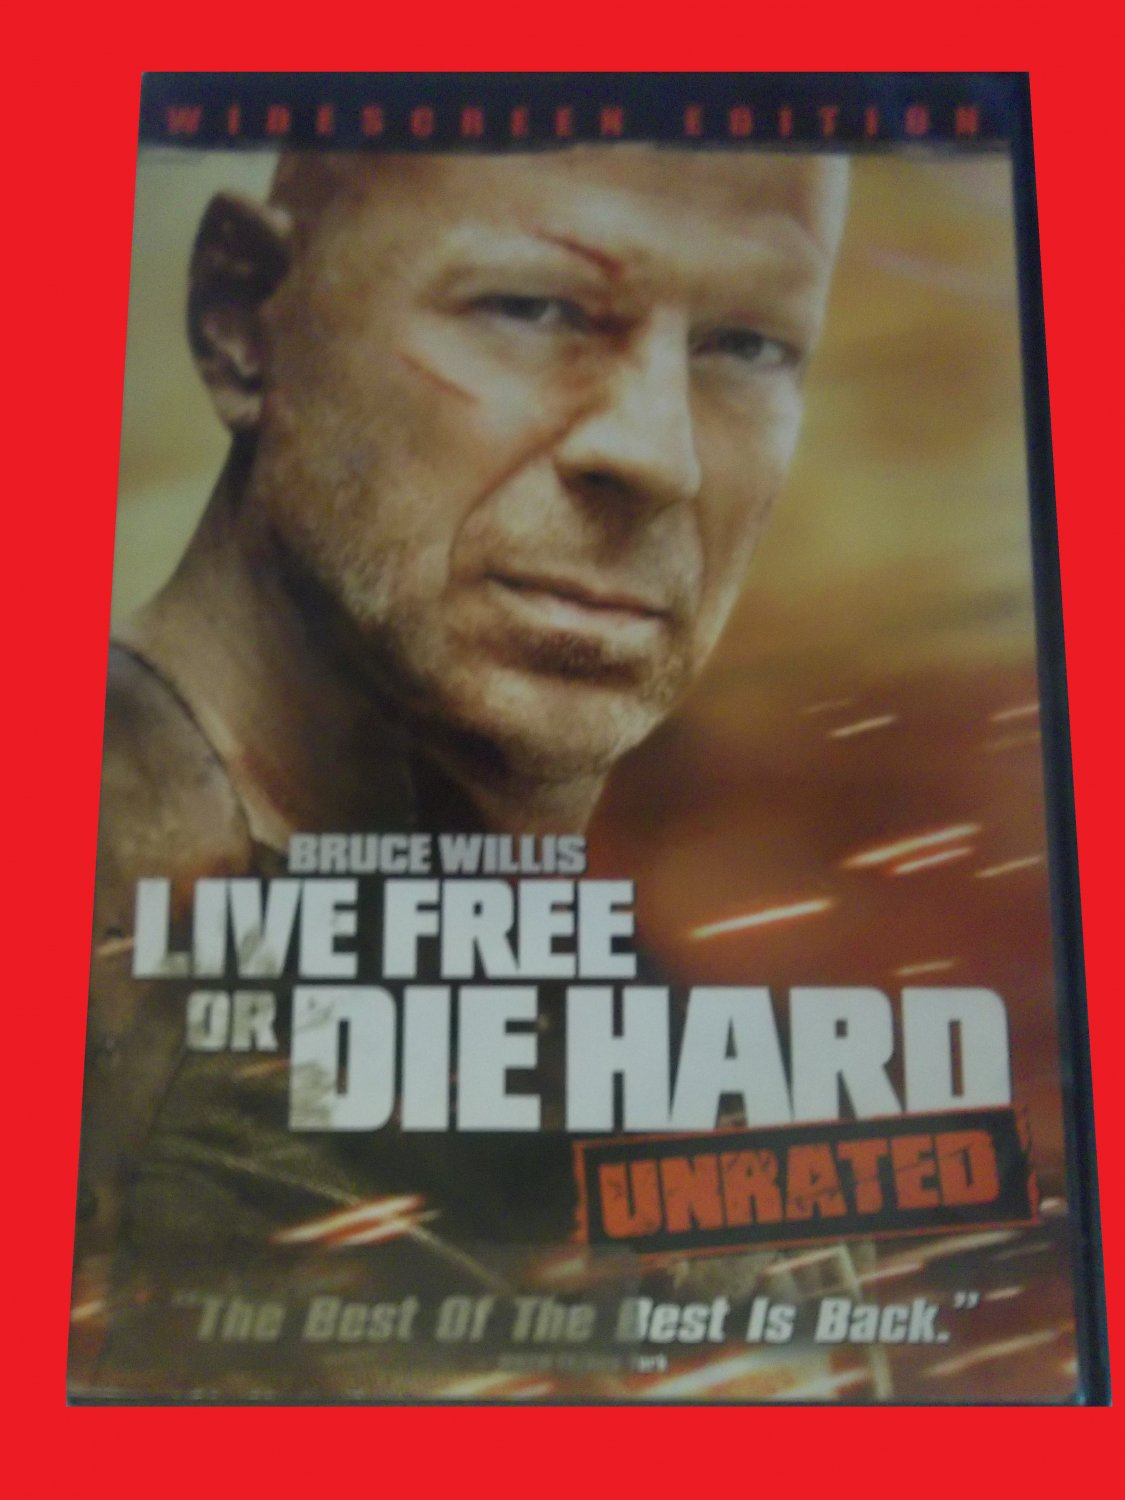 LIVE FREE OR DIE HARD (FREE DVD & FAST SHIPPING) BRUCE WILLIS (ACTION/THRILLER)